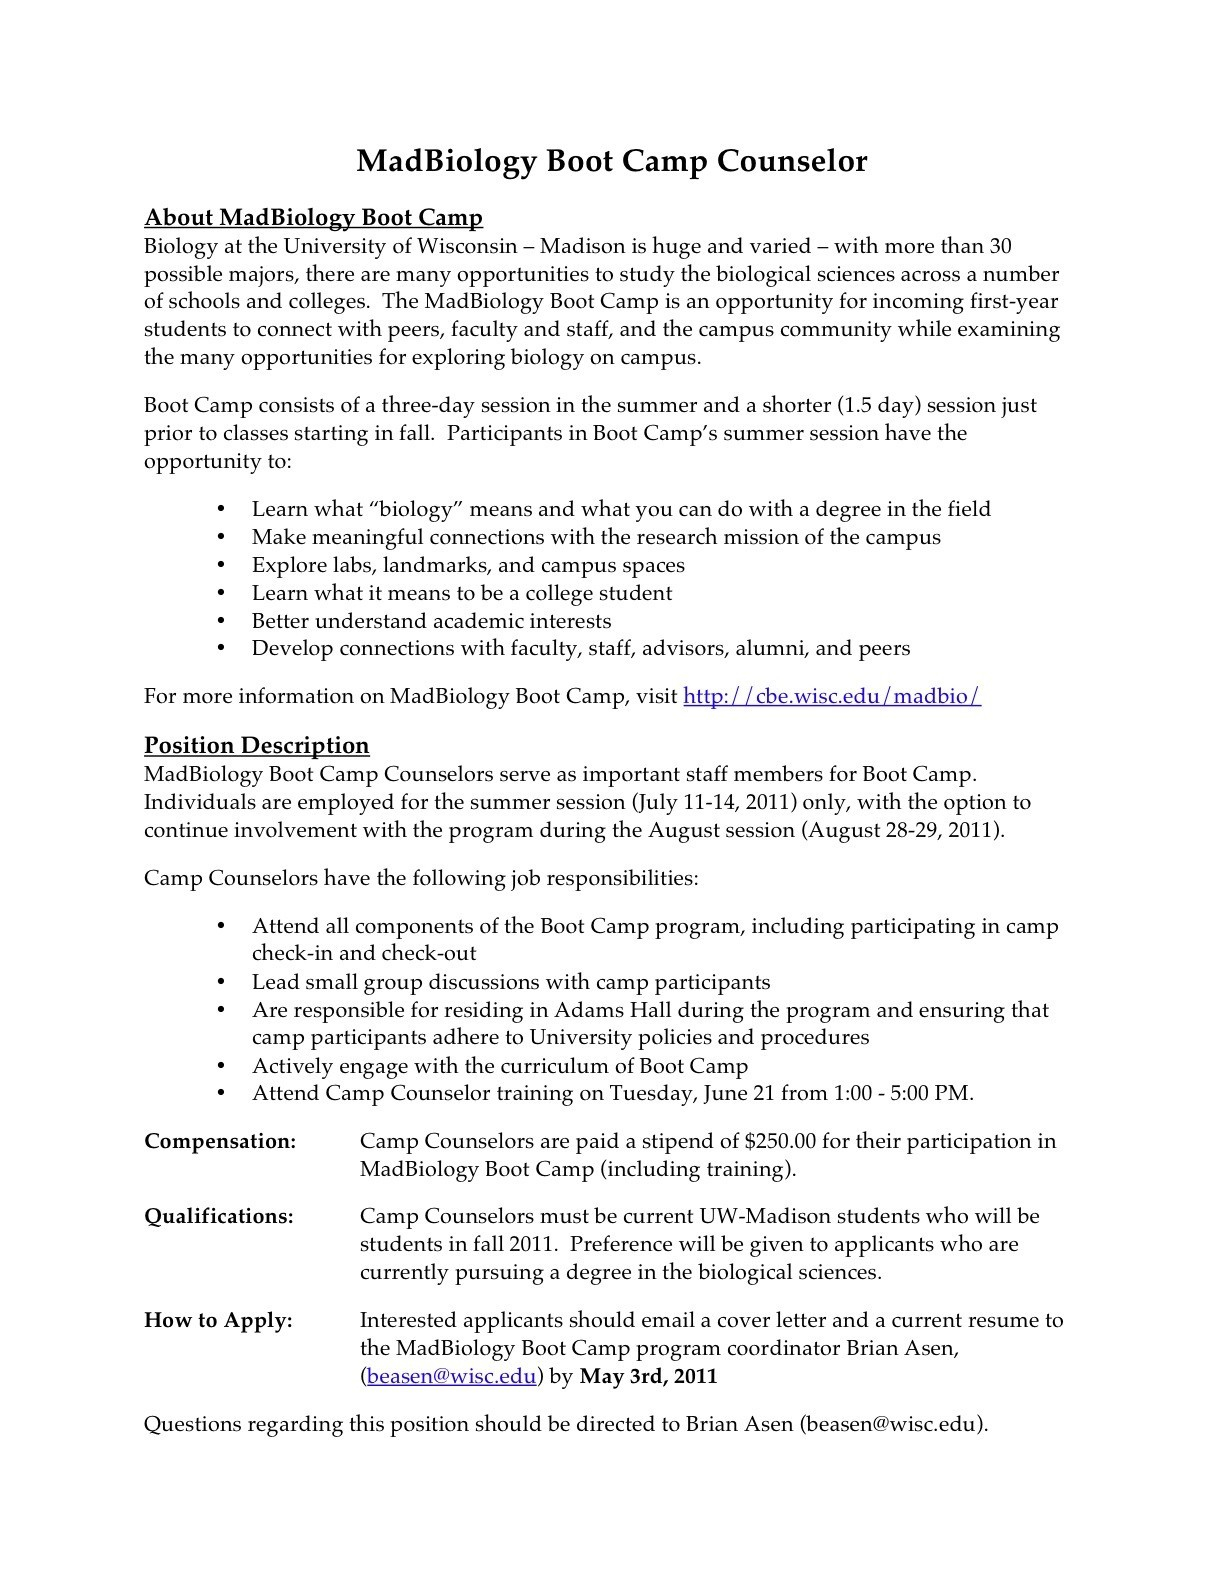 Counseling Resume Template - Camp Counselor Resume Inspirational Resume Examples for Youth